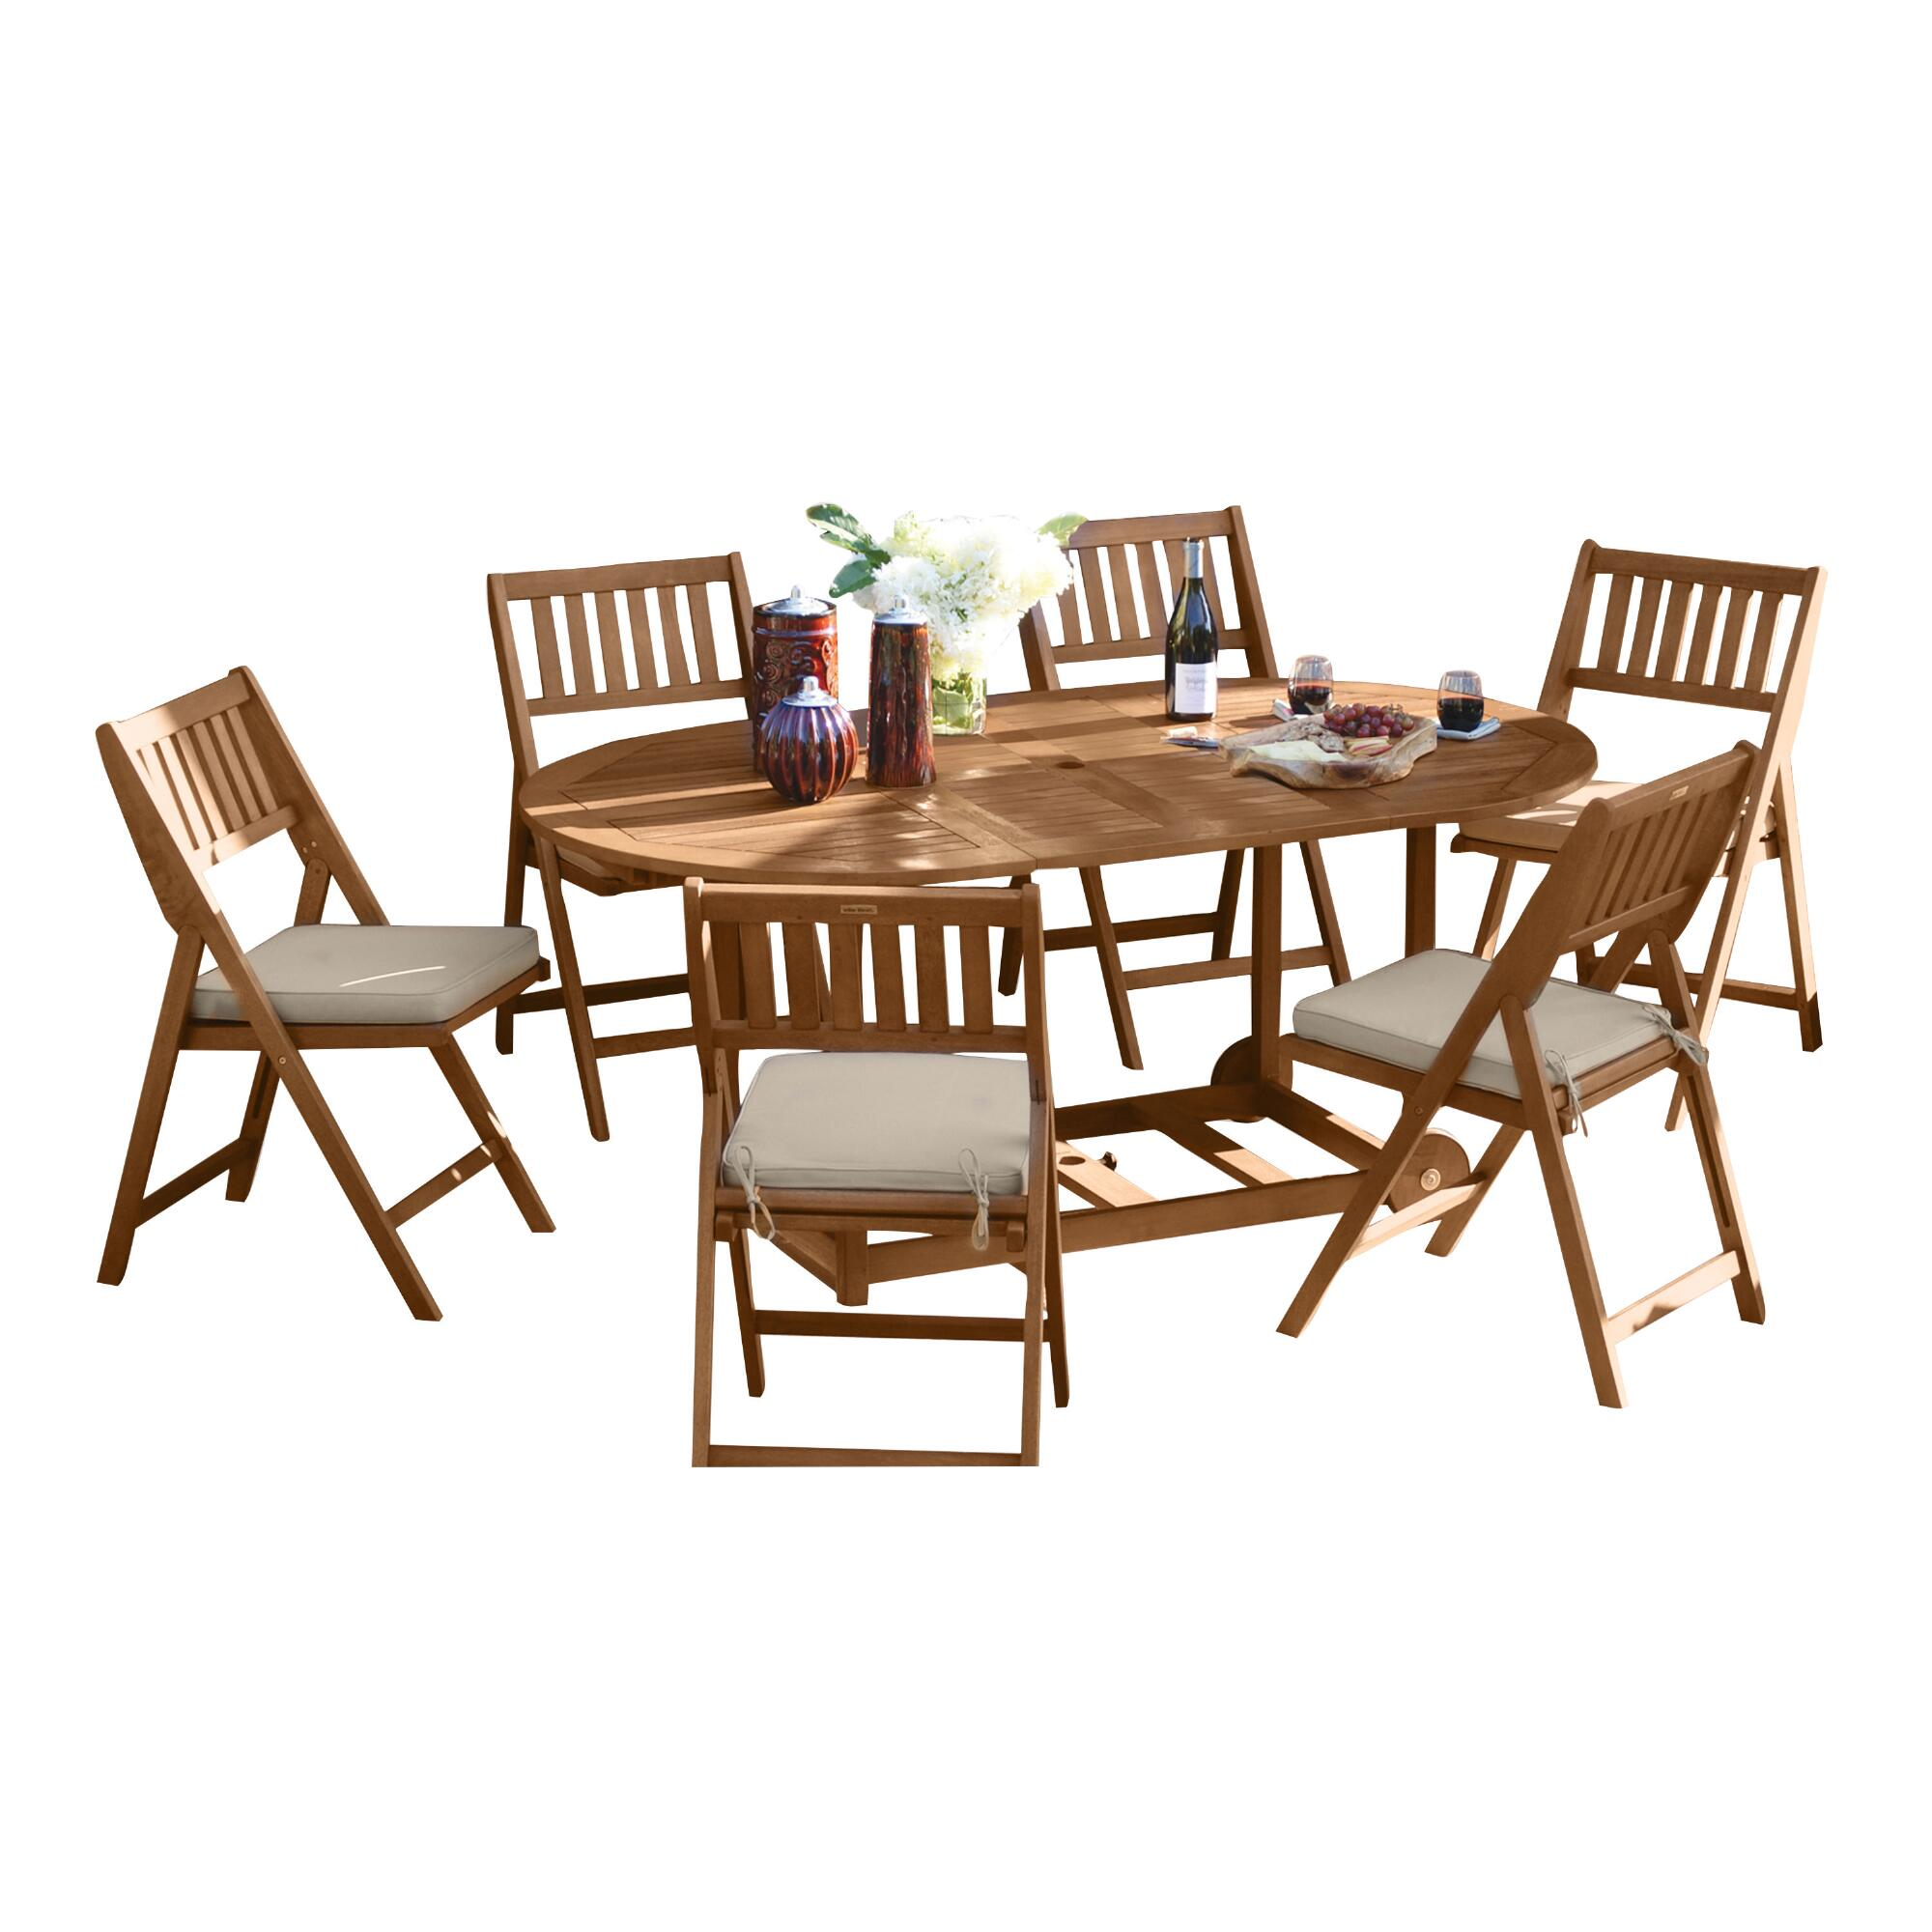 and living best of card game unique outdoor activity dining chair table room set chairs folding